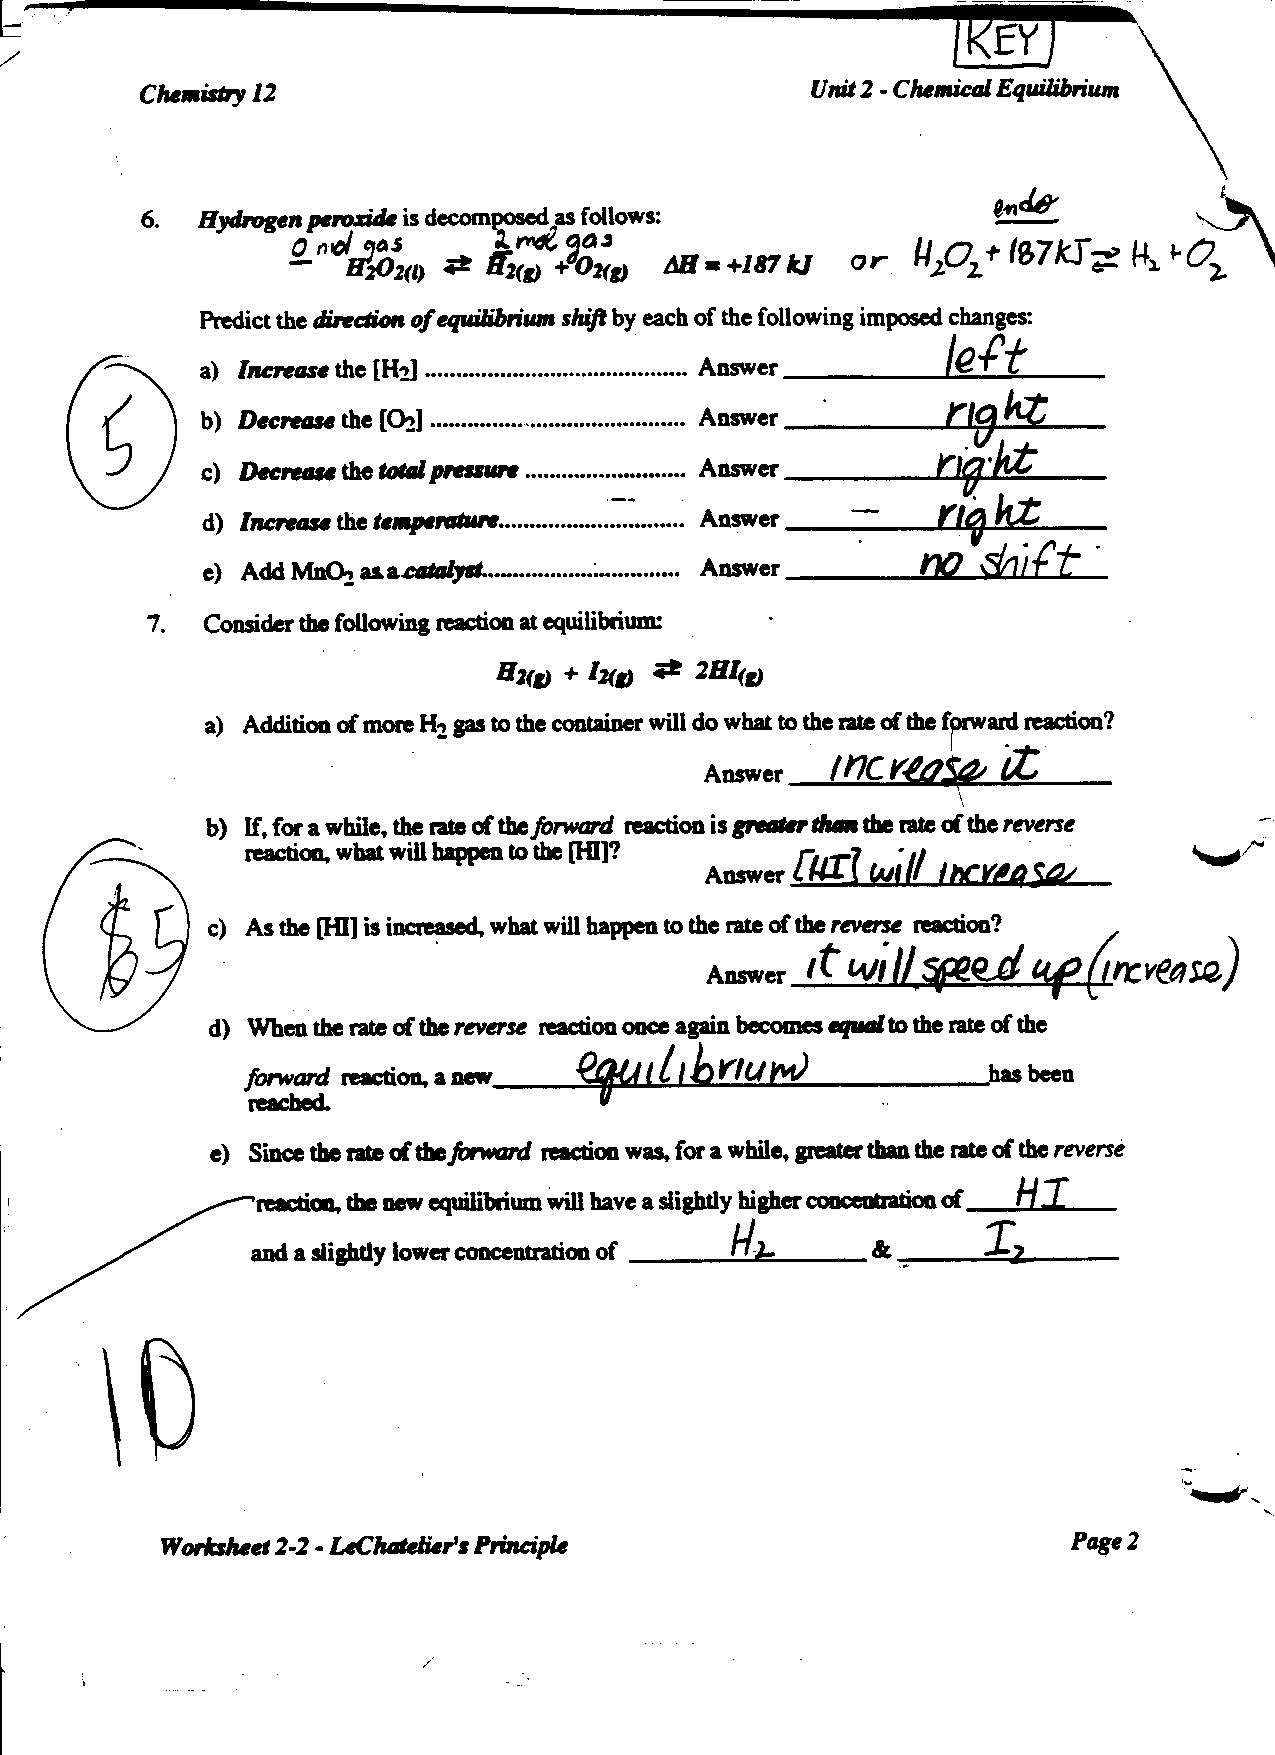 33 Chemistry Unit 10 Worksheet 2 Answers